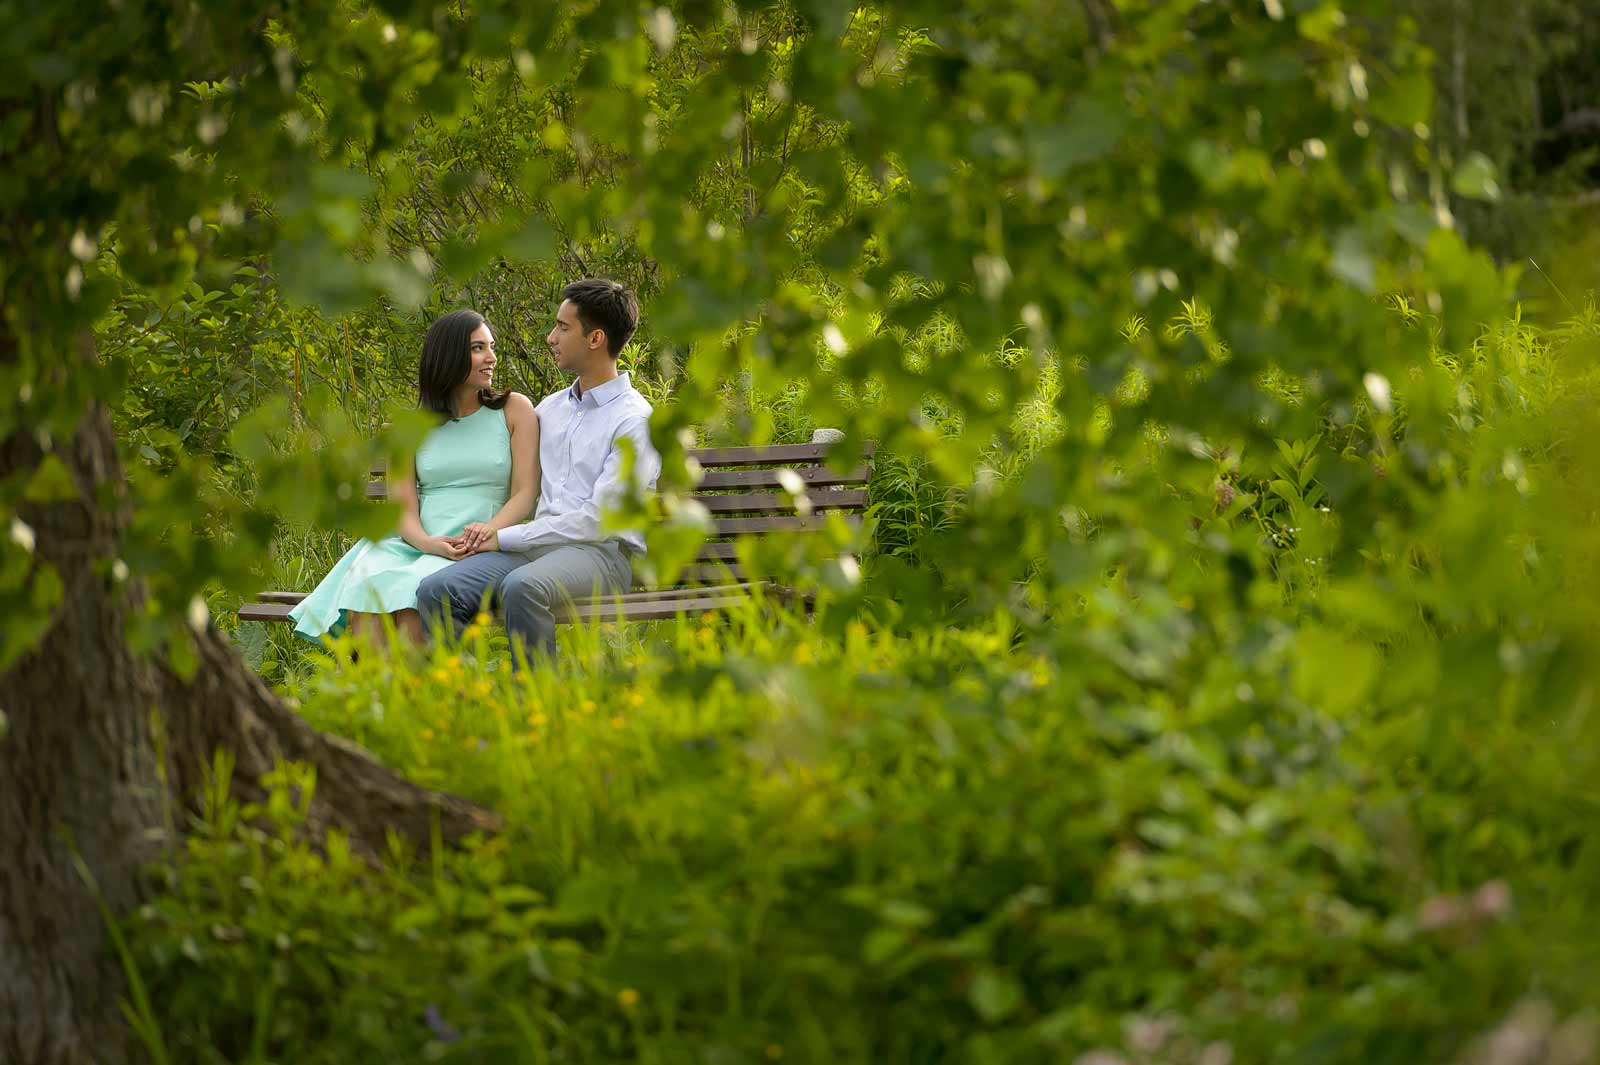 Engagement session at Dow's Lake in Ottawa with the couple sitting on a bench surrounded by beautiful greenery